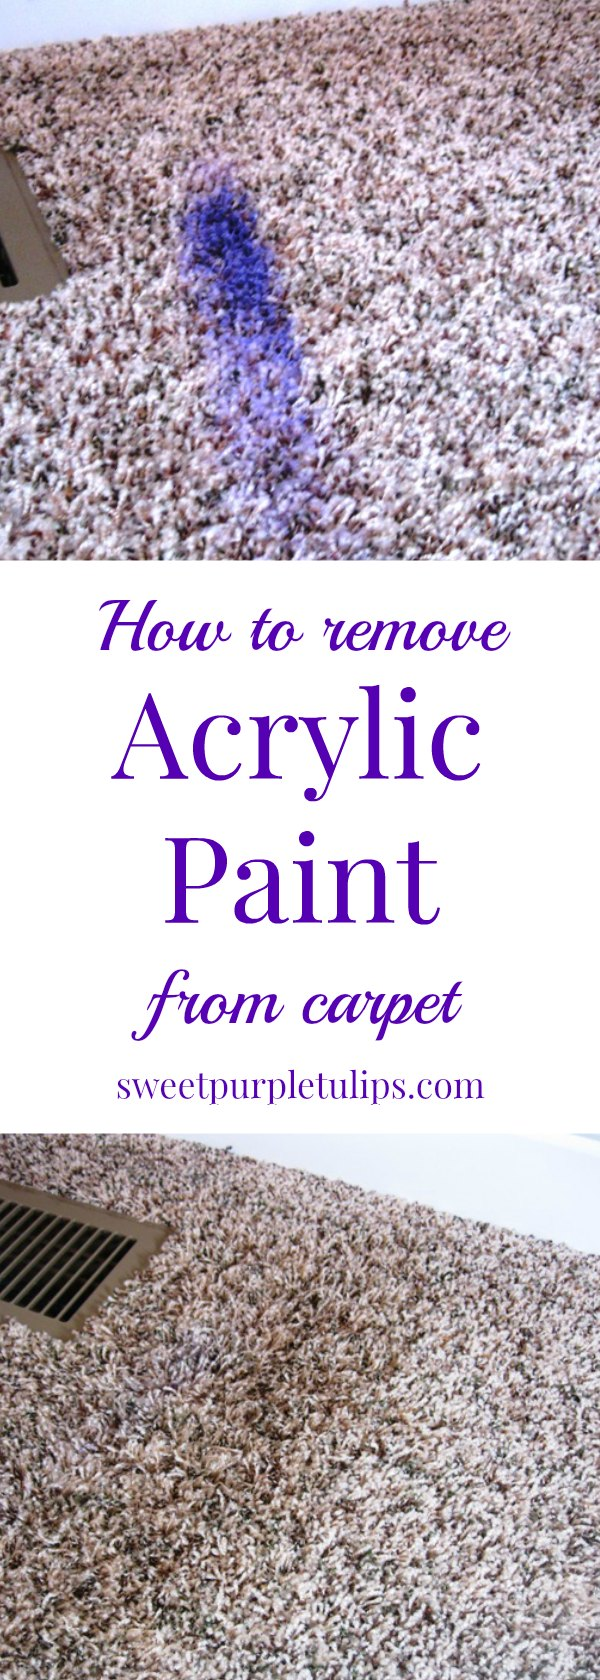 How To Remove Acrylic Paint From Carpet Sweet Purple Tulips